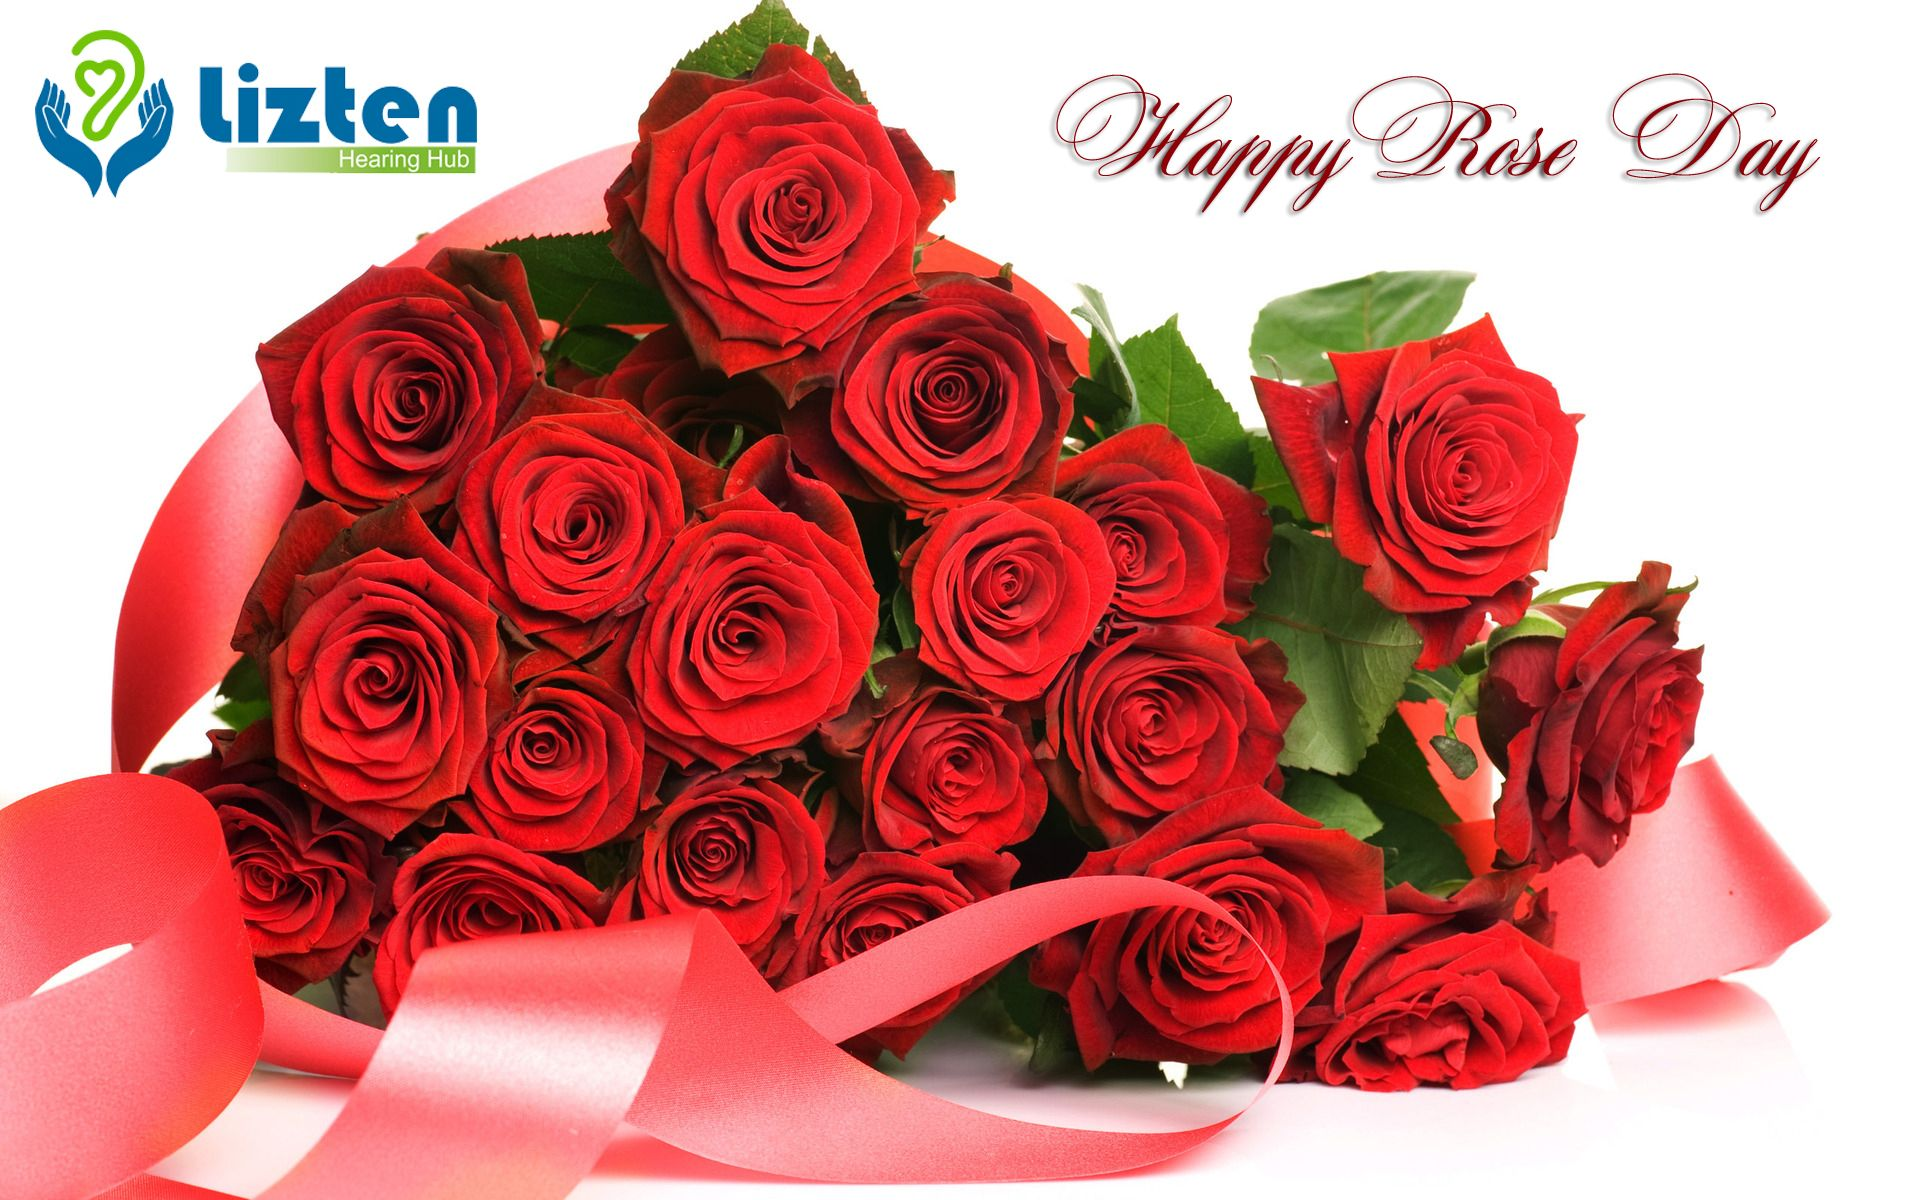 Rose Day Wallpapers And Beautiful Images 2016 Rose Day Wallpaper Happy Rose Day Wallpaper Red Roses